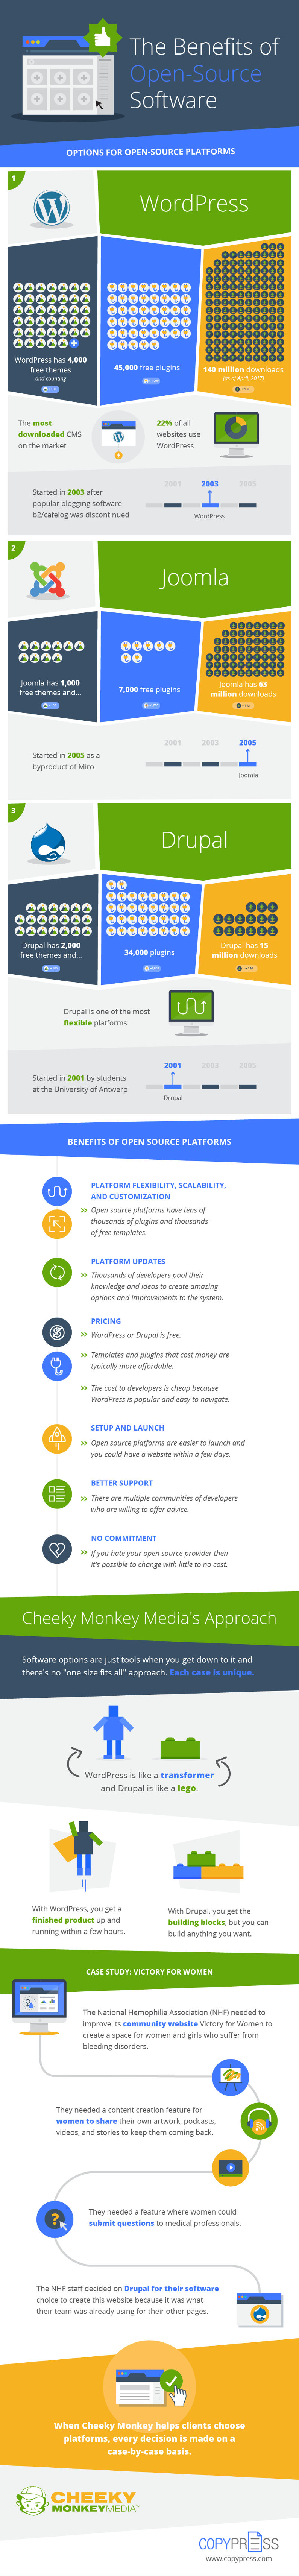 Open source software benefits - infographic